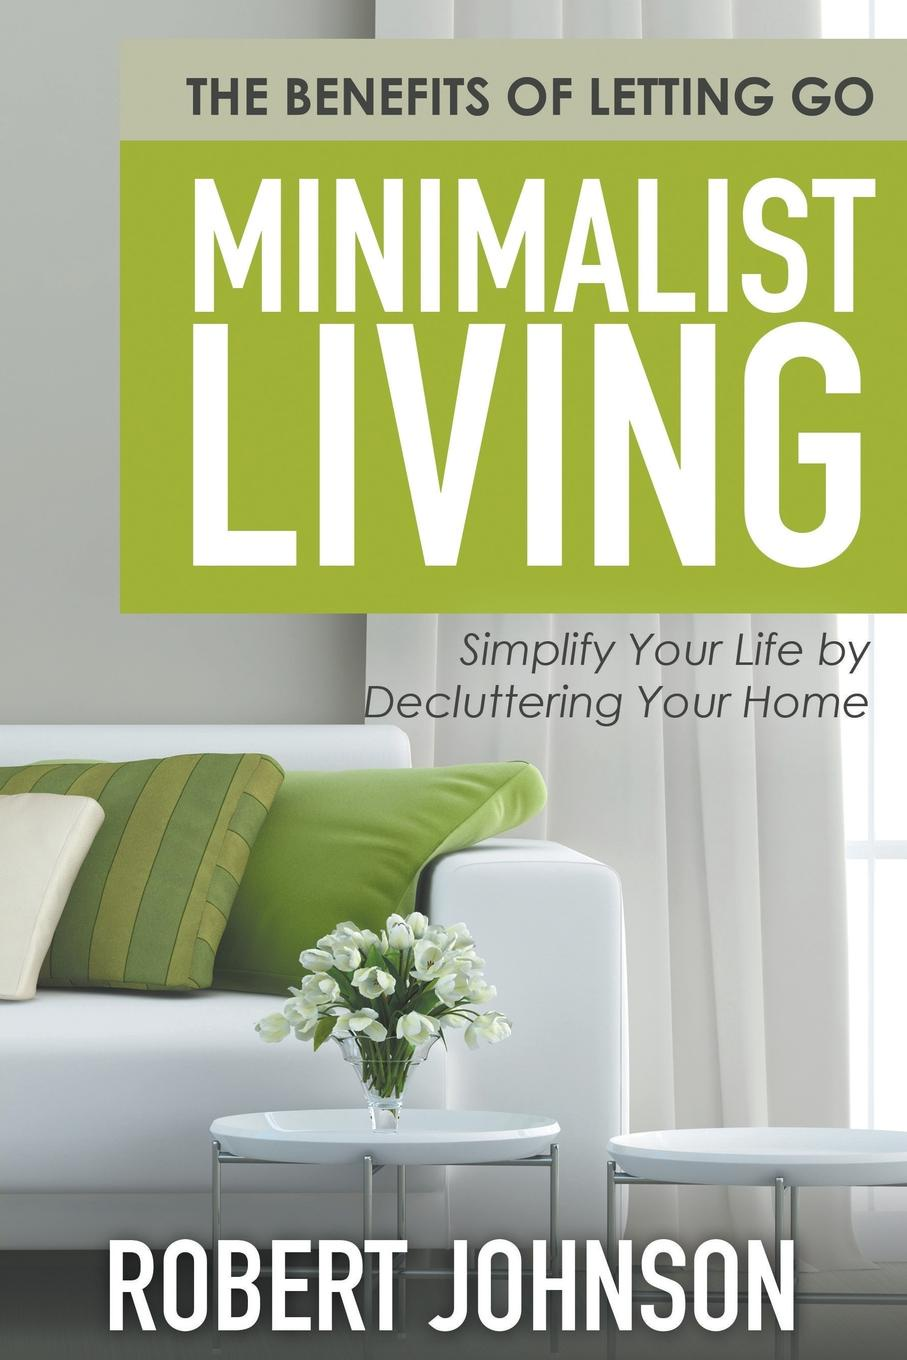 Robert Johnson Minimalist Living Simplify Your Life by Decluttering Your Home. The Benefits of Letting Go sandra archer johnson because of kathy